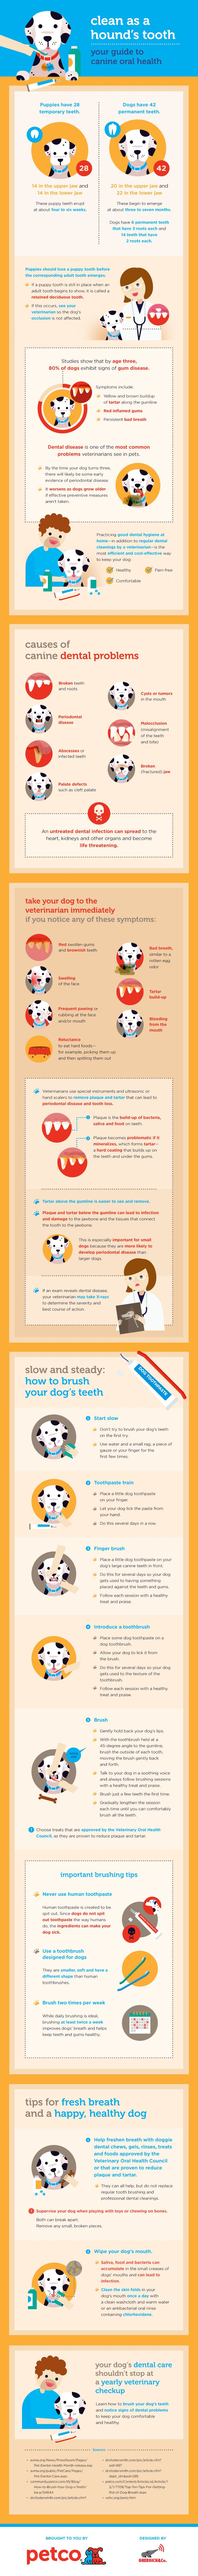 New Infographic On Canine Oral Care From Petco Canine Dental Dog Dental Care